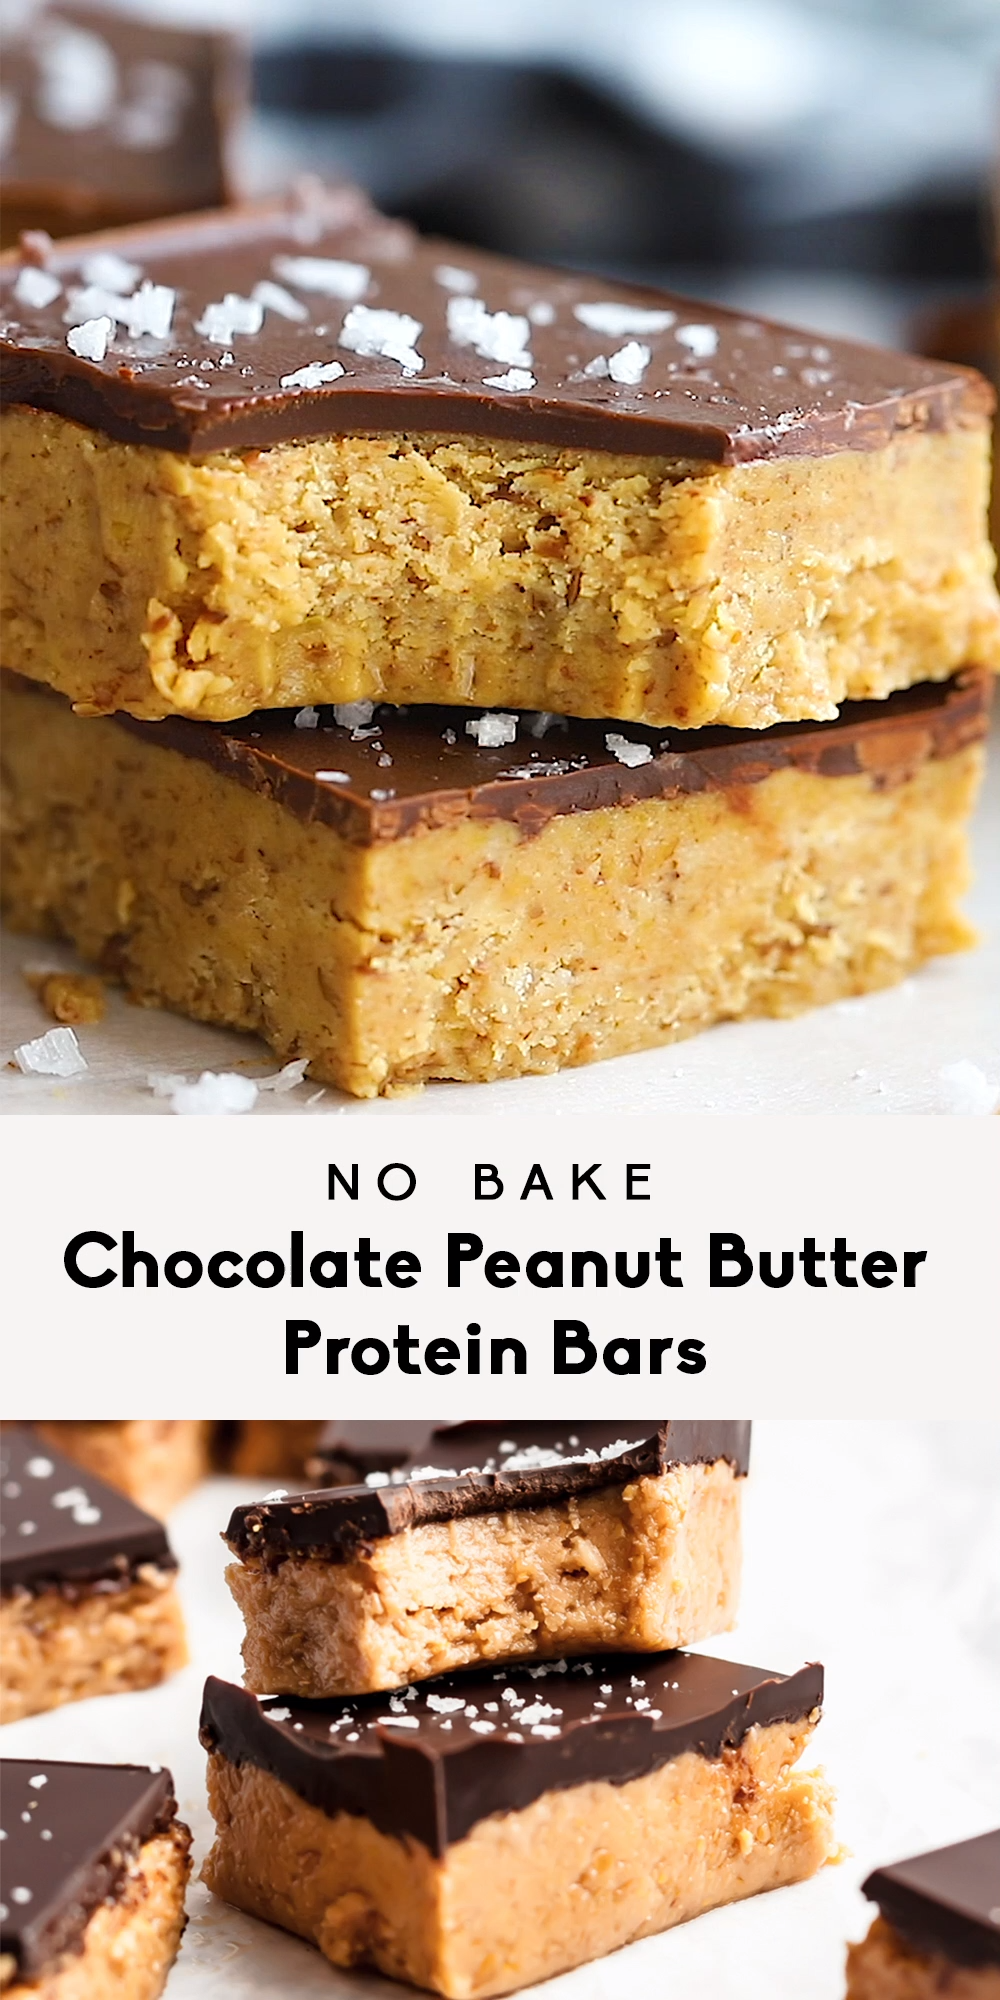 No Bake Chocolate Peanut Butter Protein Bars #peanutrecipes